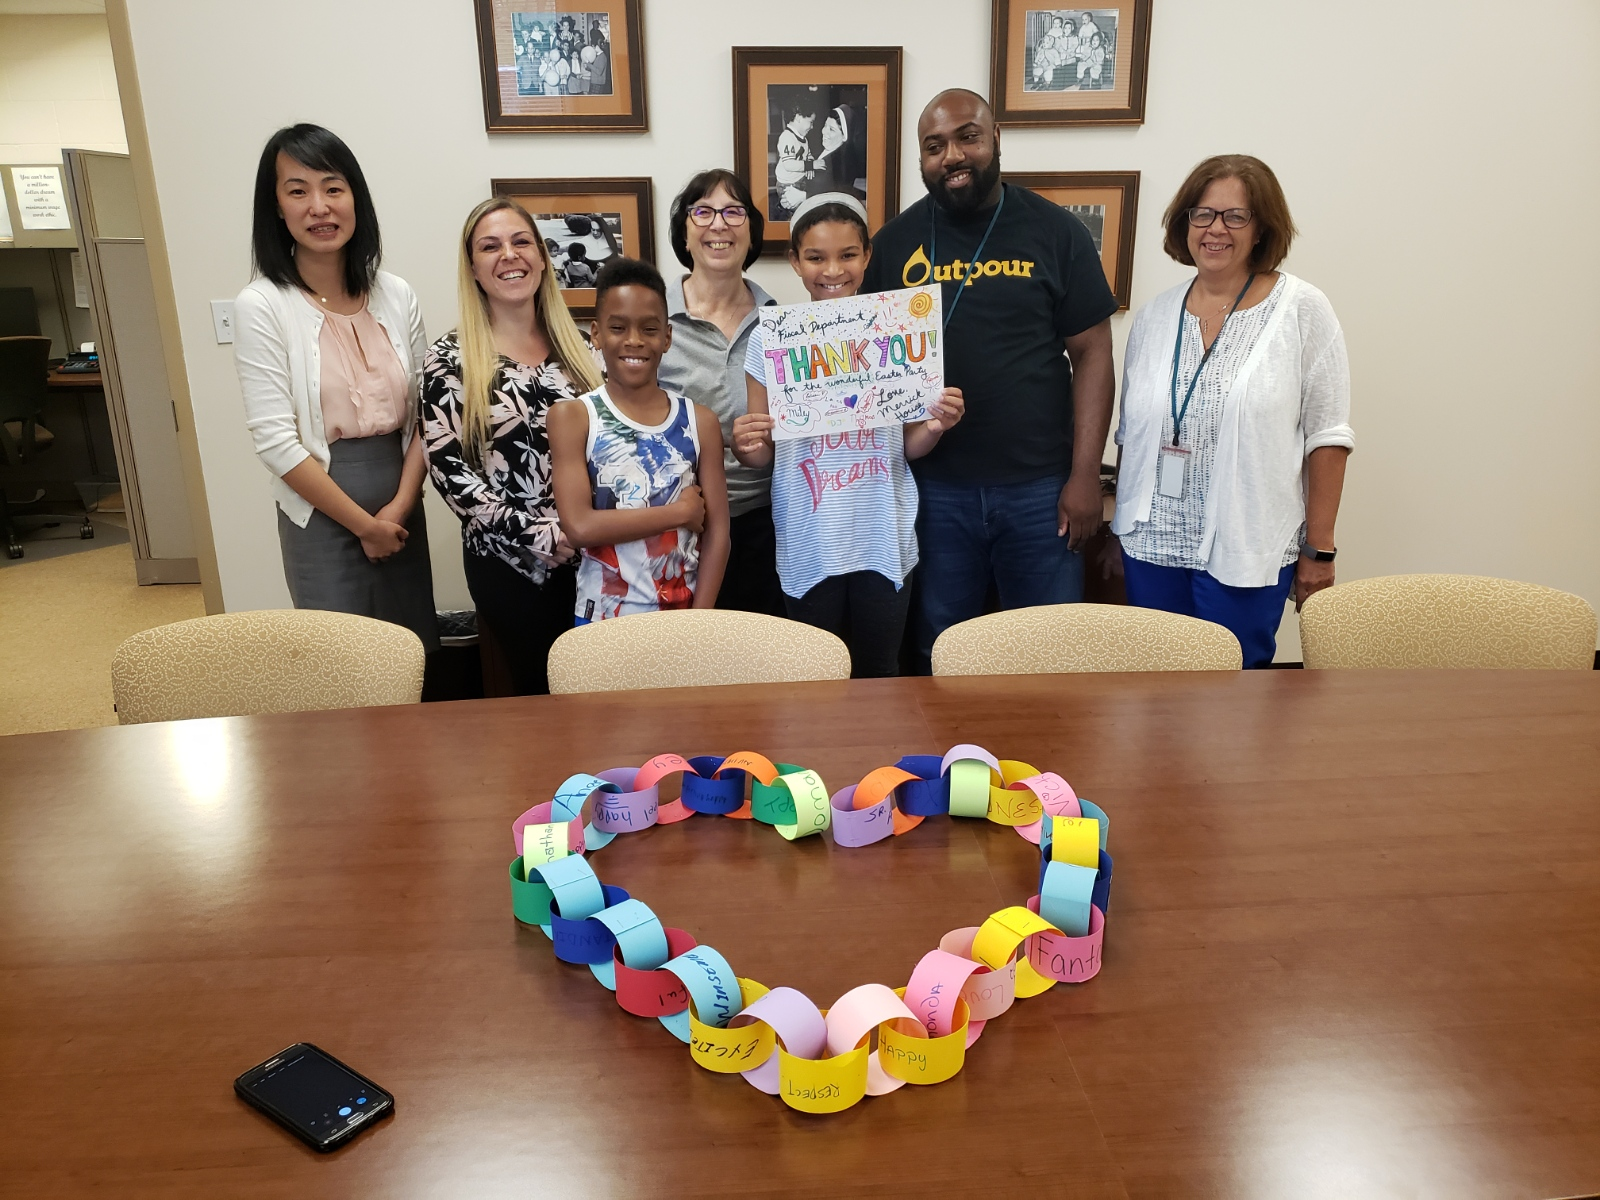 Merrick Group Home   Merrick Residents made thank you cards for staff in the fiscal department who provided them with special Easter treats!